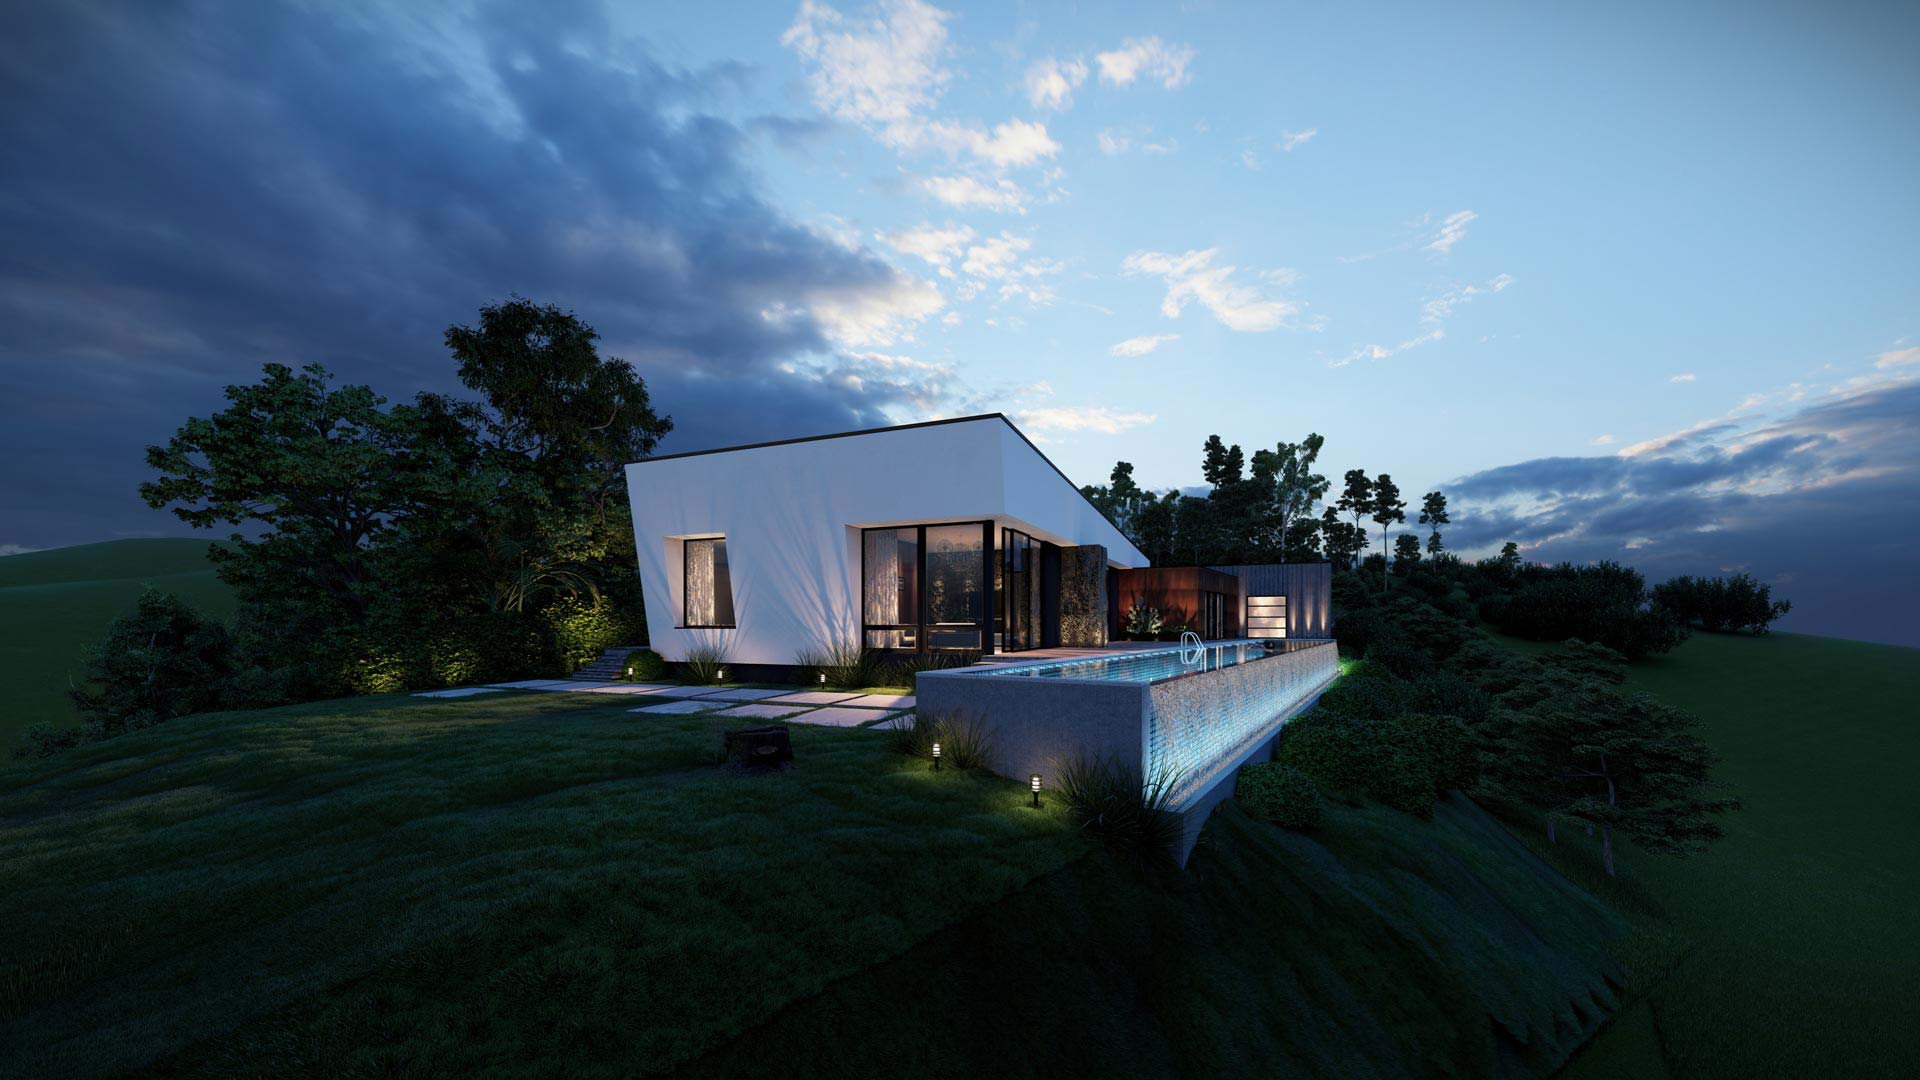 Viilla-pool-exterior-1920x1080-zoomed-out_Lumion10_TenOverStudio